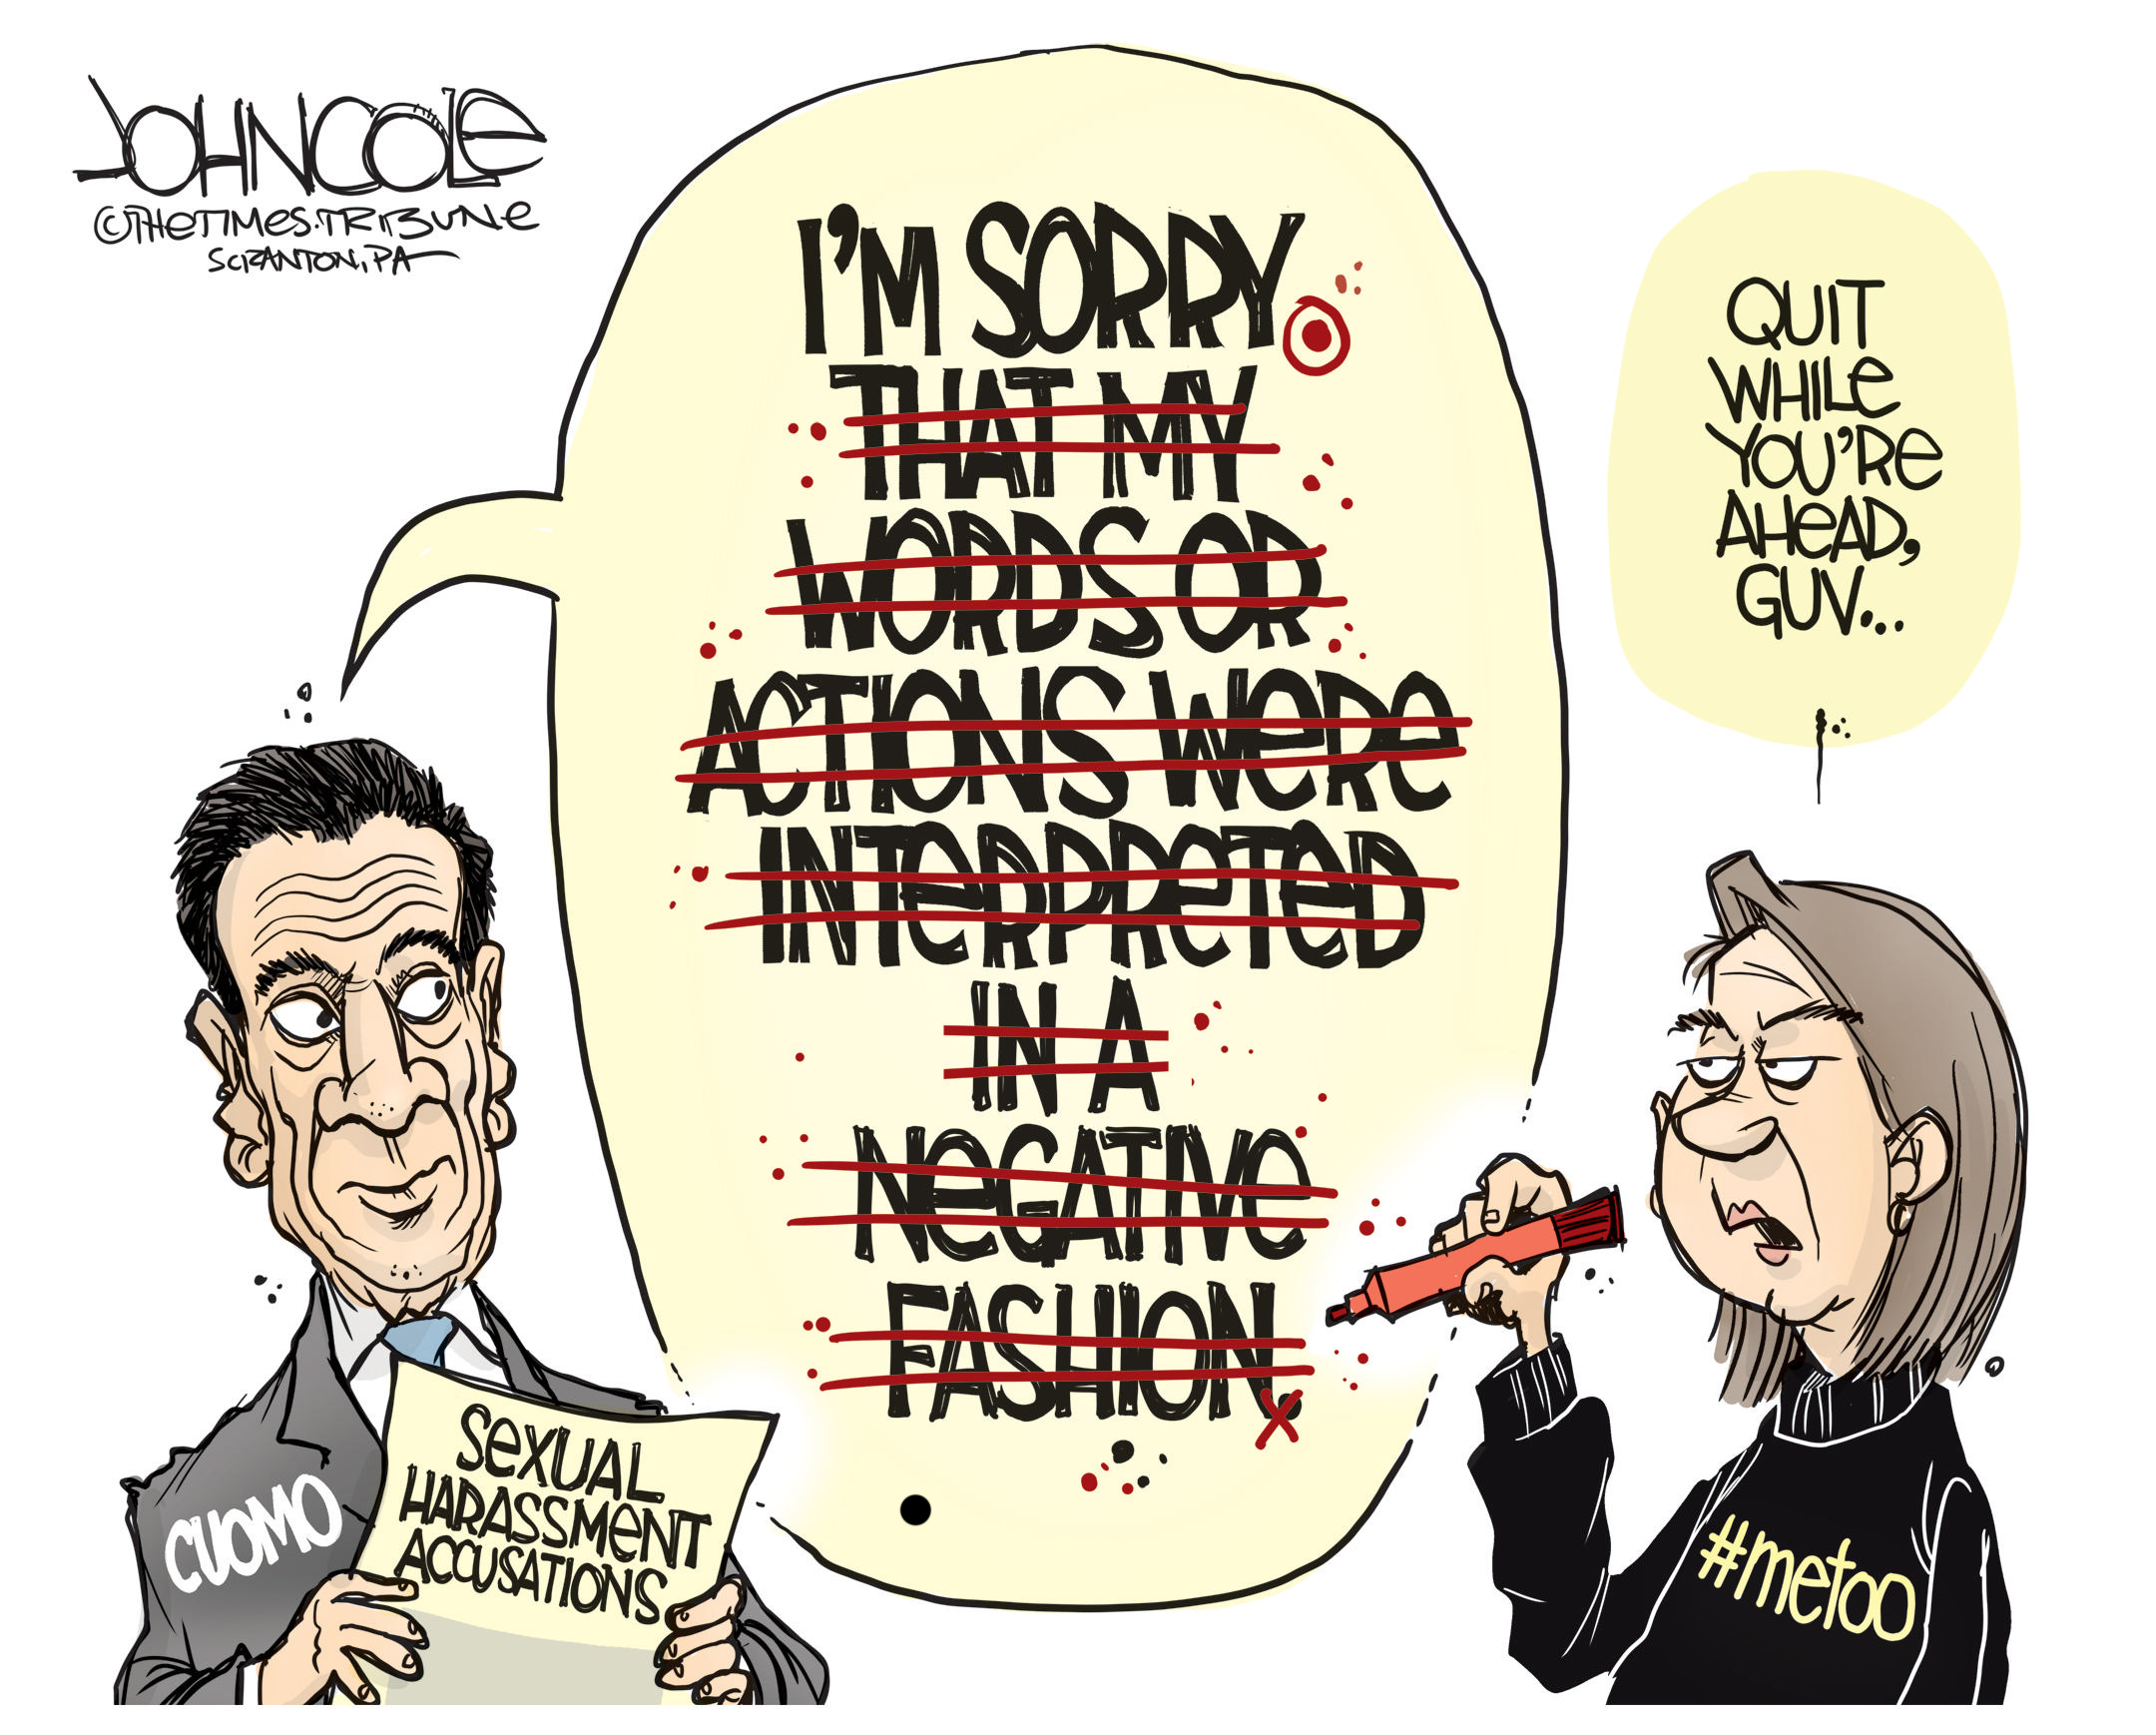 March 5: Cuomo Scandal